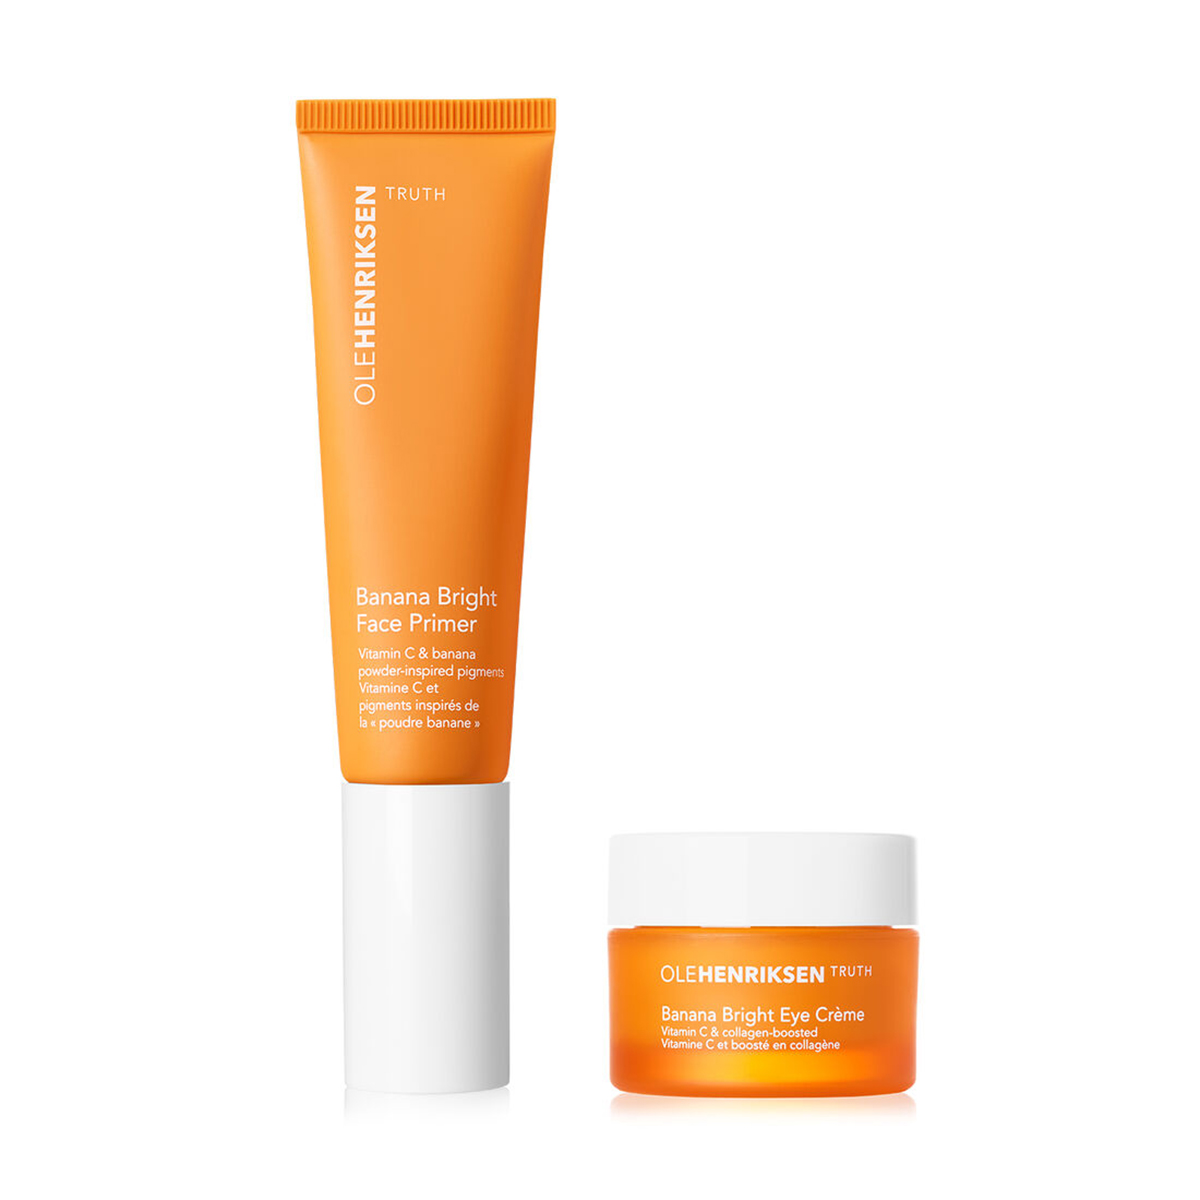 Ole Henriksen's Glow From Home Vitamin C Duo